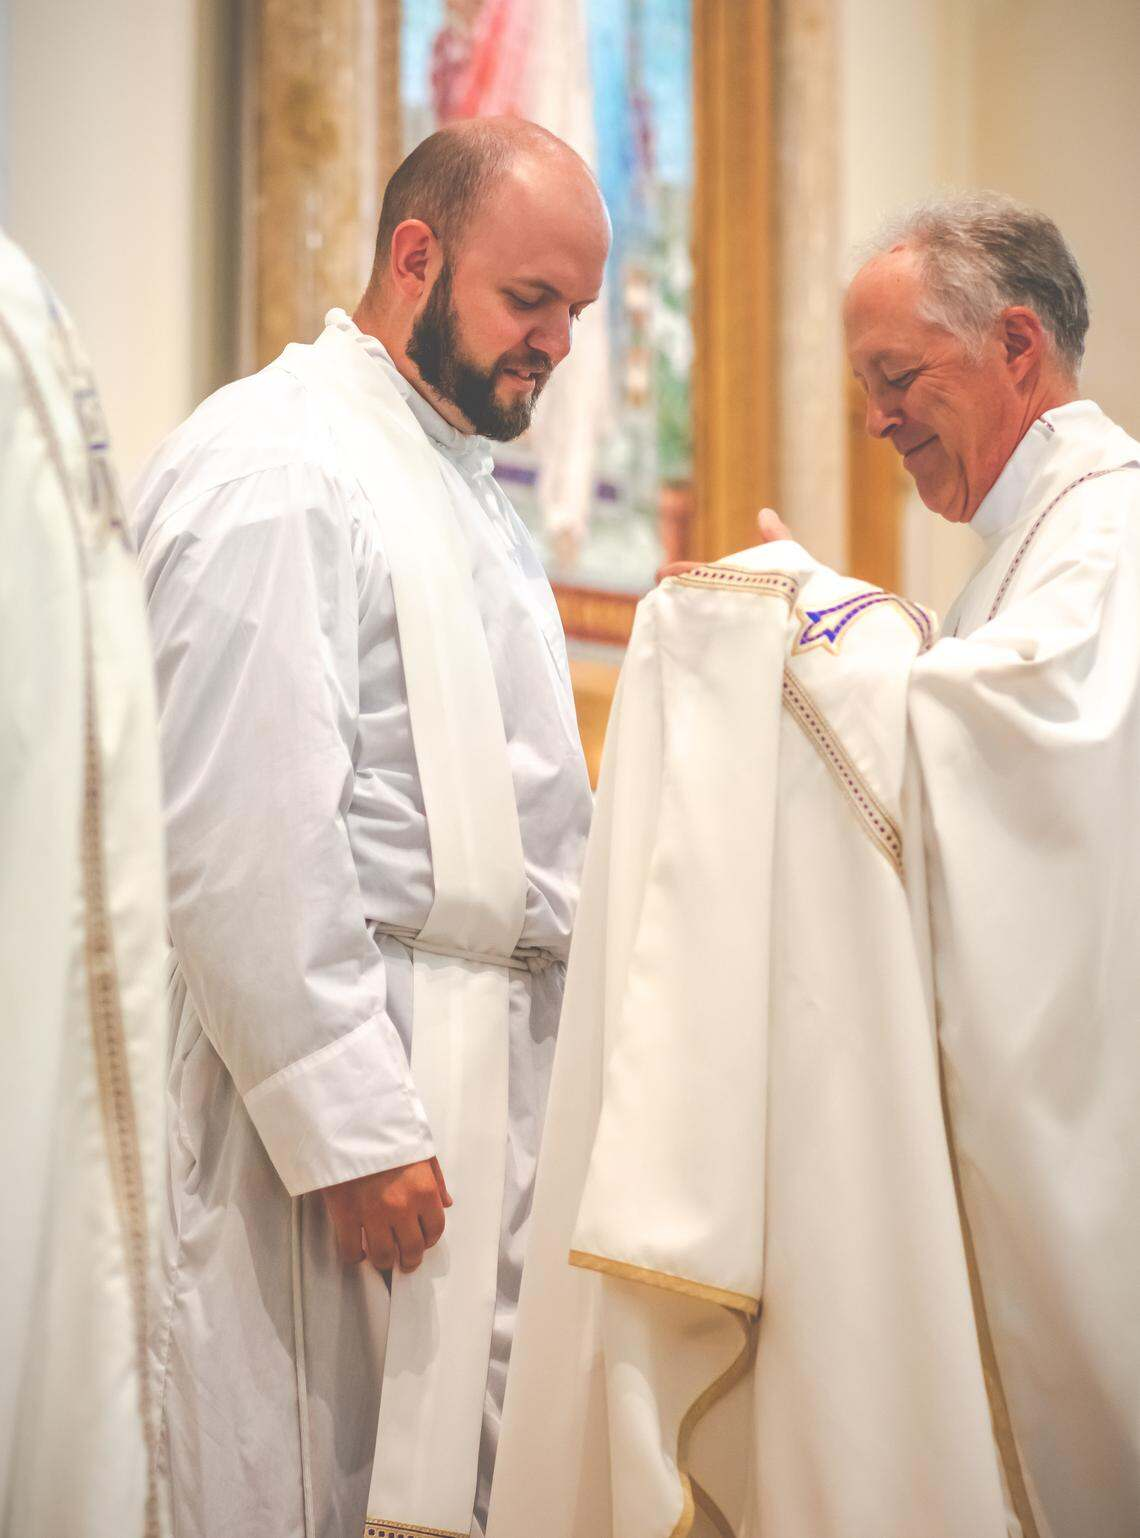 Fr. Paul Duchschere (right) of Sts. Anne and Joachim Catholic Church in Fargo, the former home parish of Fr. Eric Seitz, prepares to place the priest chasuble (robe) on the new priest, Fr. Eric Seitz, at his ordination Mass on Aug. 8, 2020, at St. Mary's Cathedral in Fargo. Photo by Kristina Lahr / New Earth / Special to The Forum